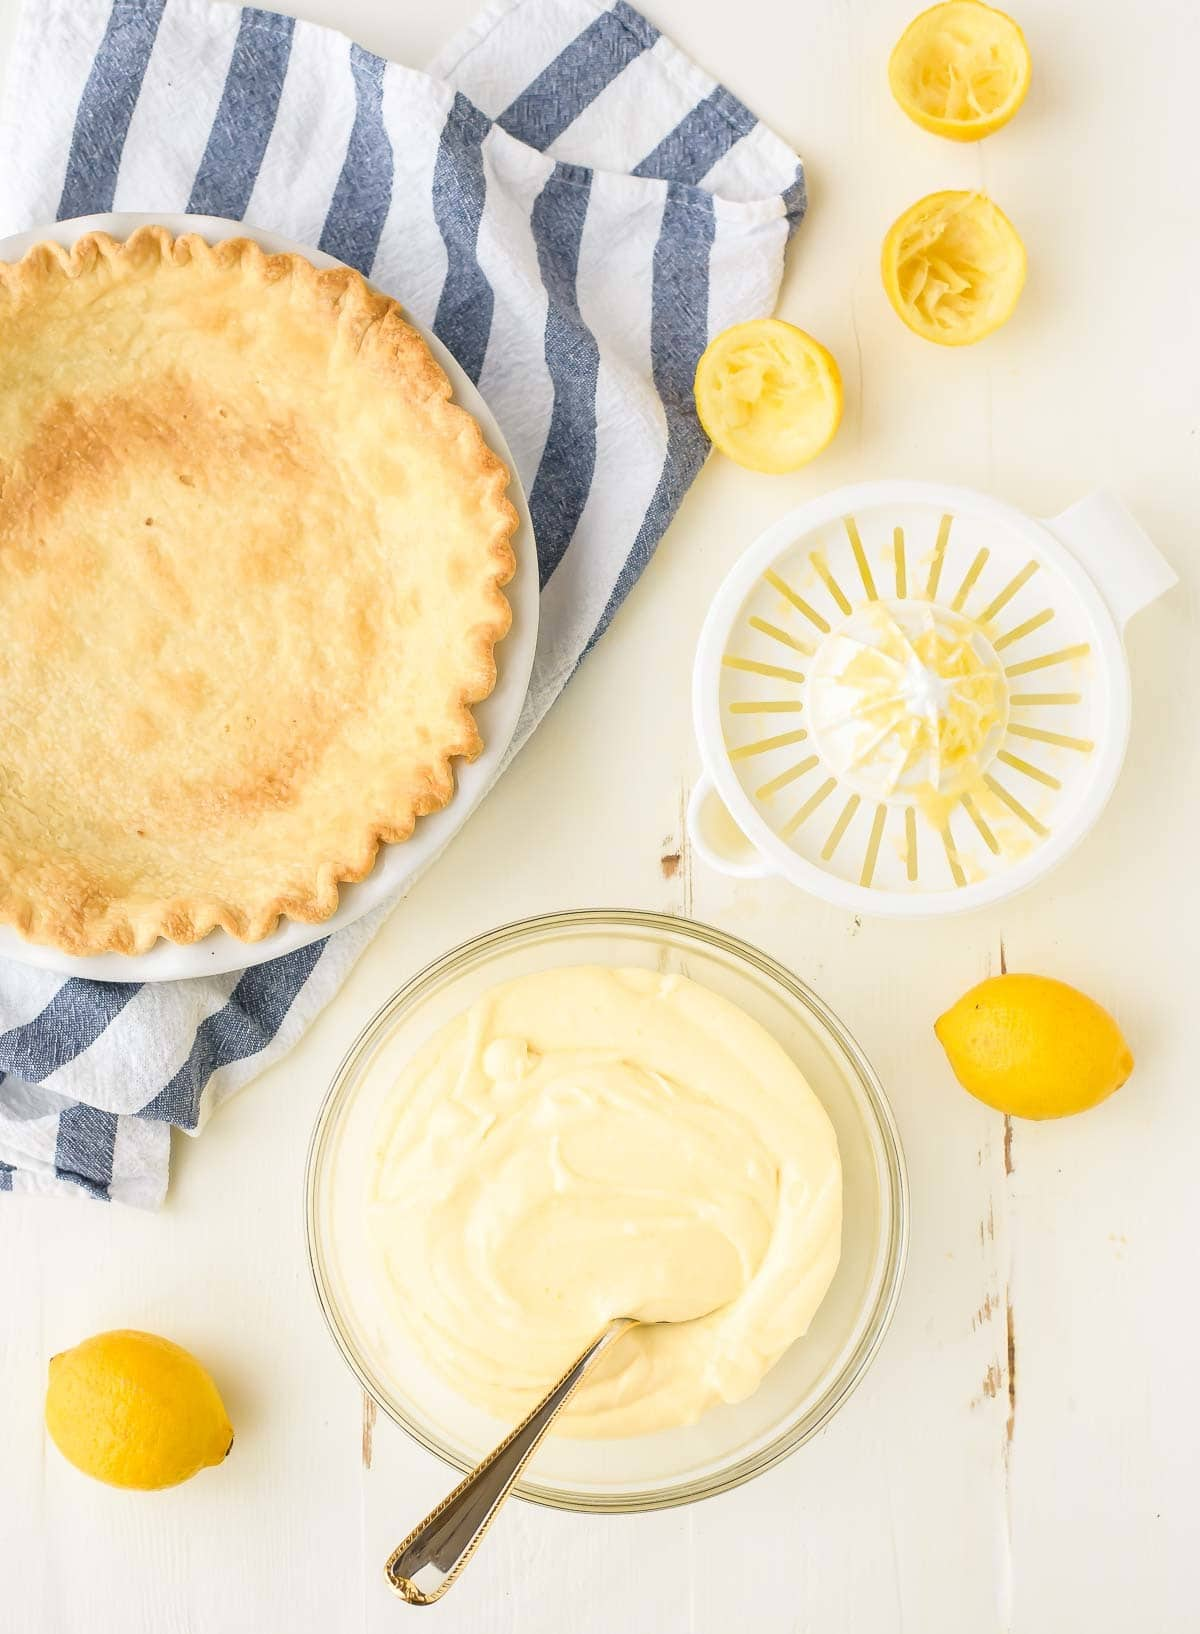 How to make Lemon Cream Pie from scratch @wellplated